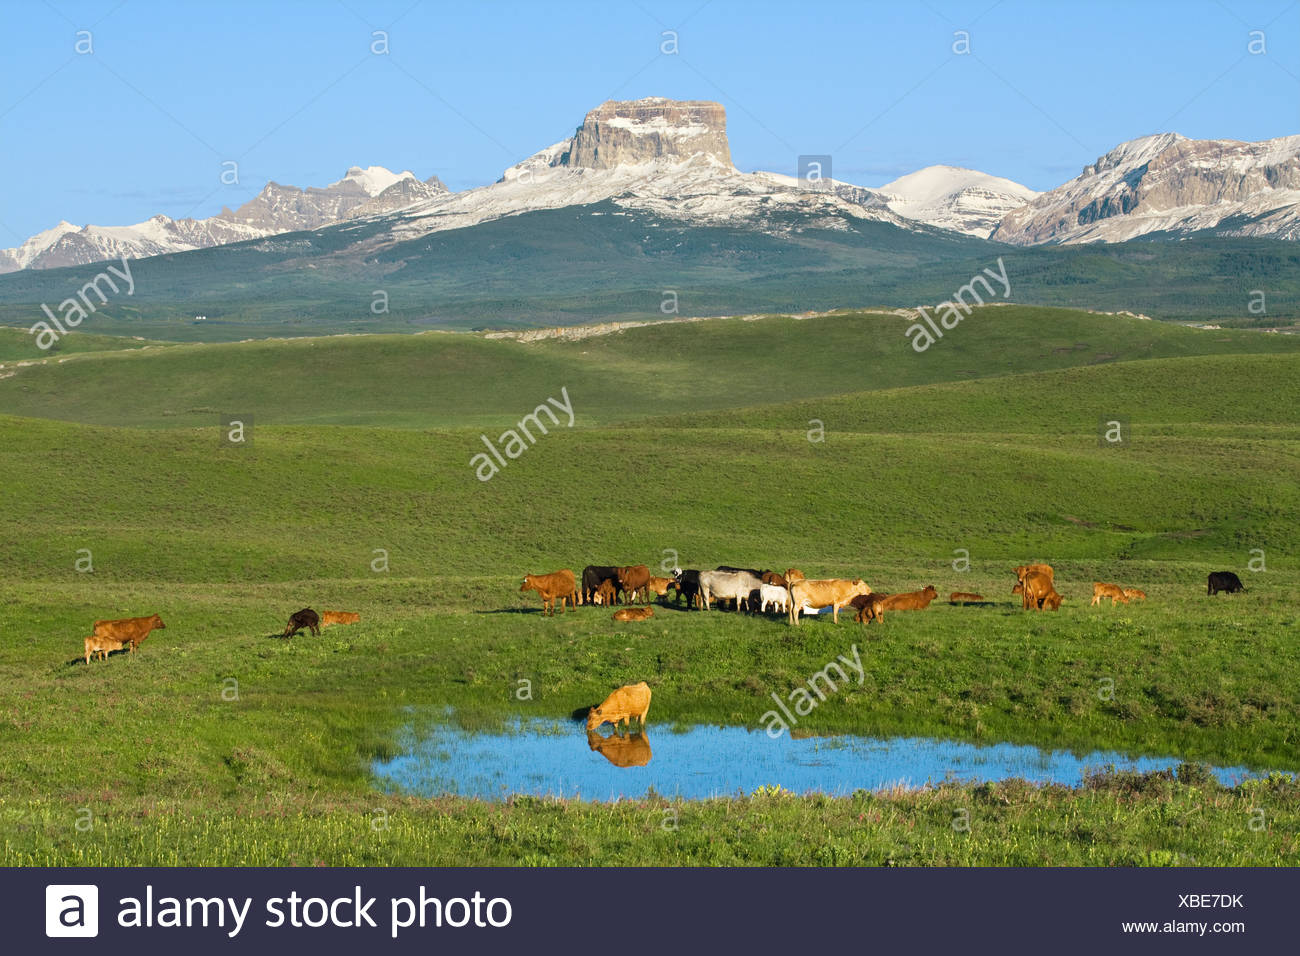 Mixed breeds of beef cows and calves assemble beside a pond after sunrise in a foothills pasture near Canadian Rockies / Canada. - Stock Image